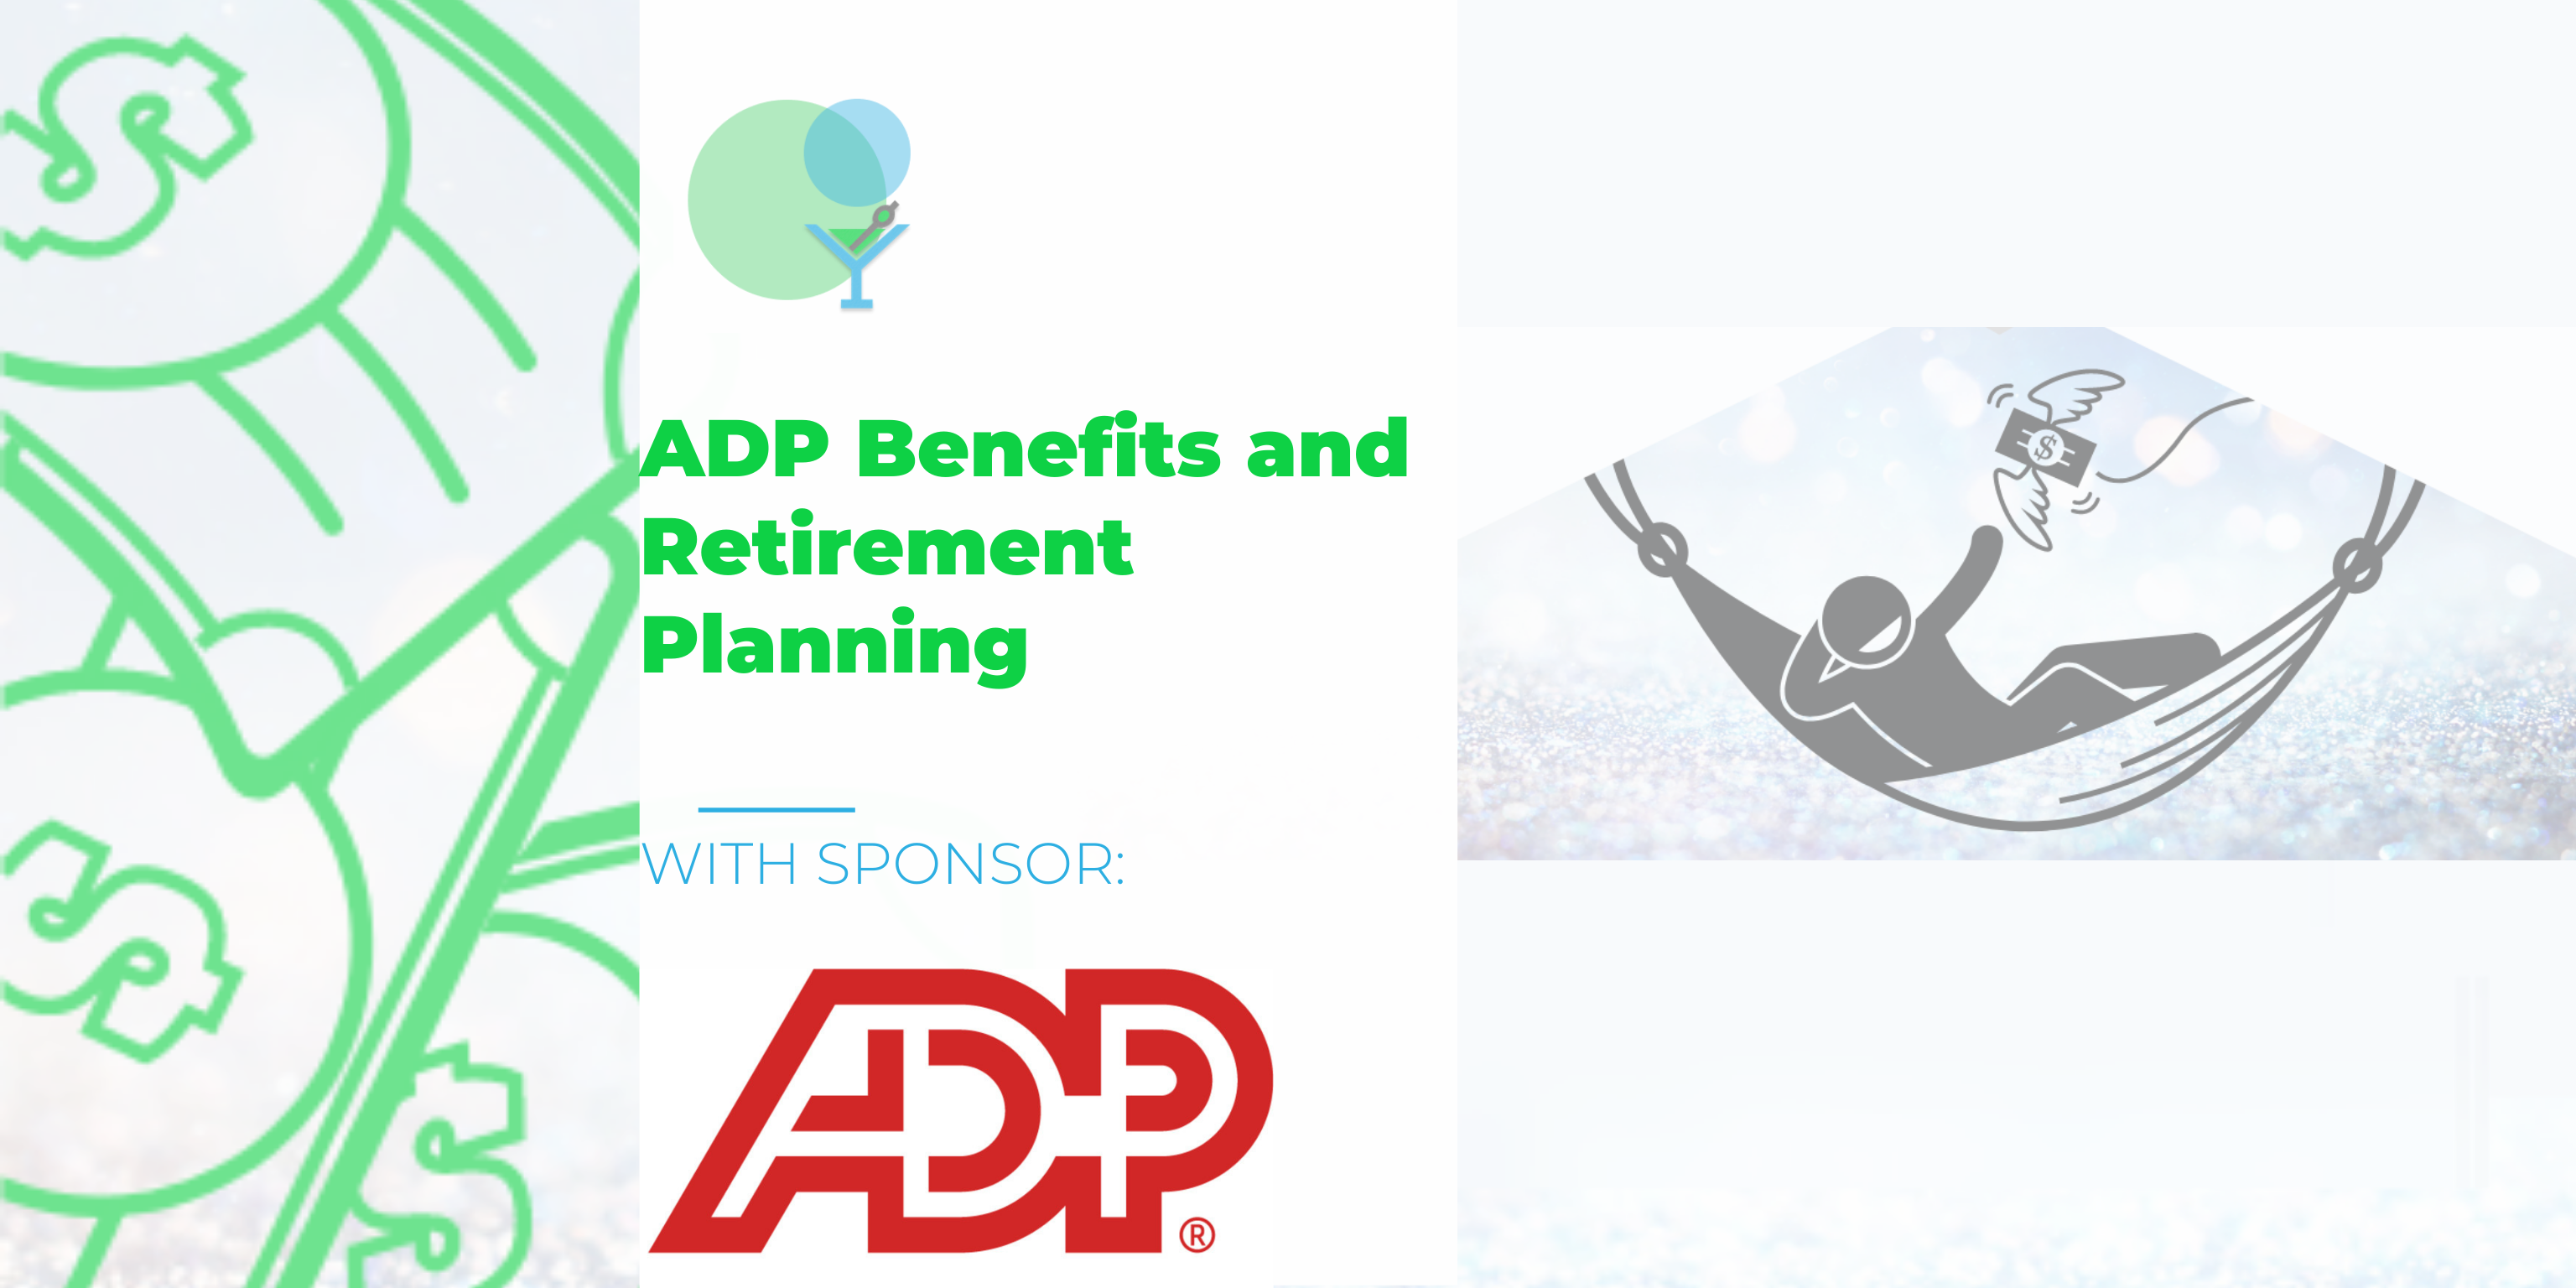 Year-End and ADP Retirement Planning & Benefits